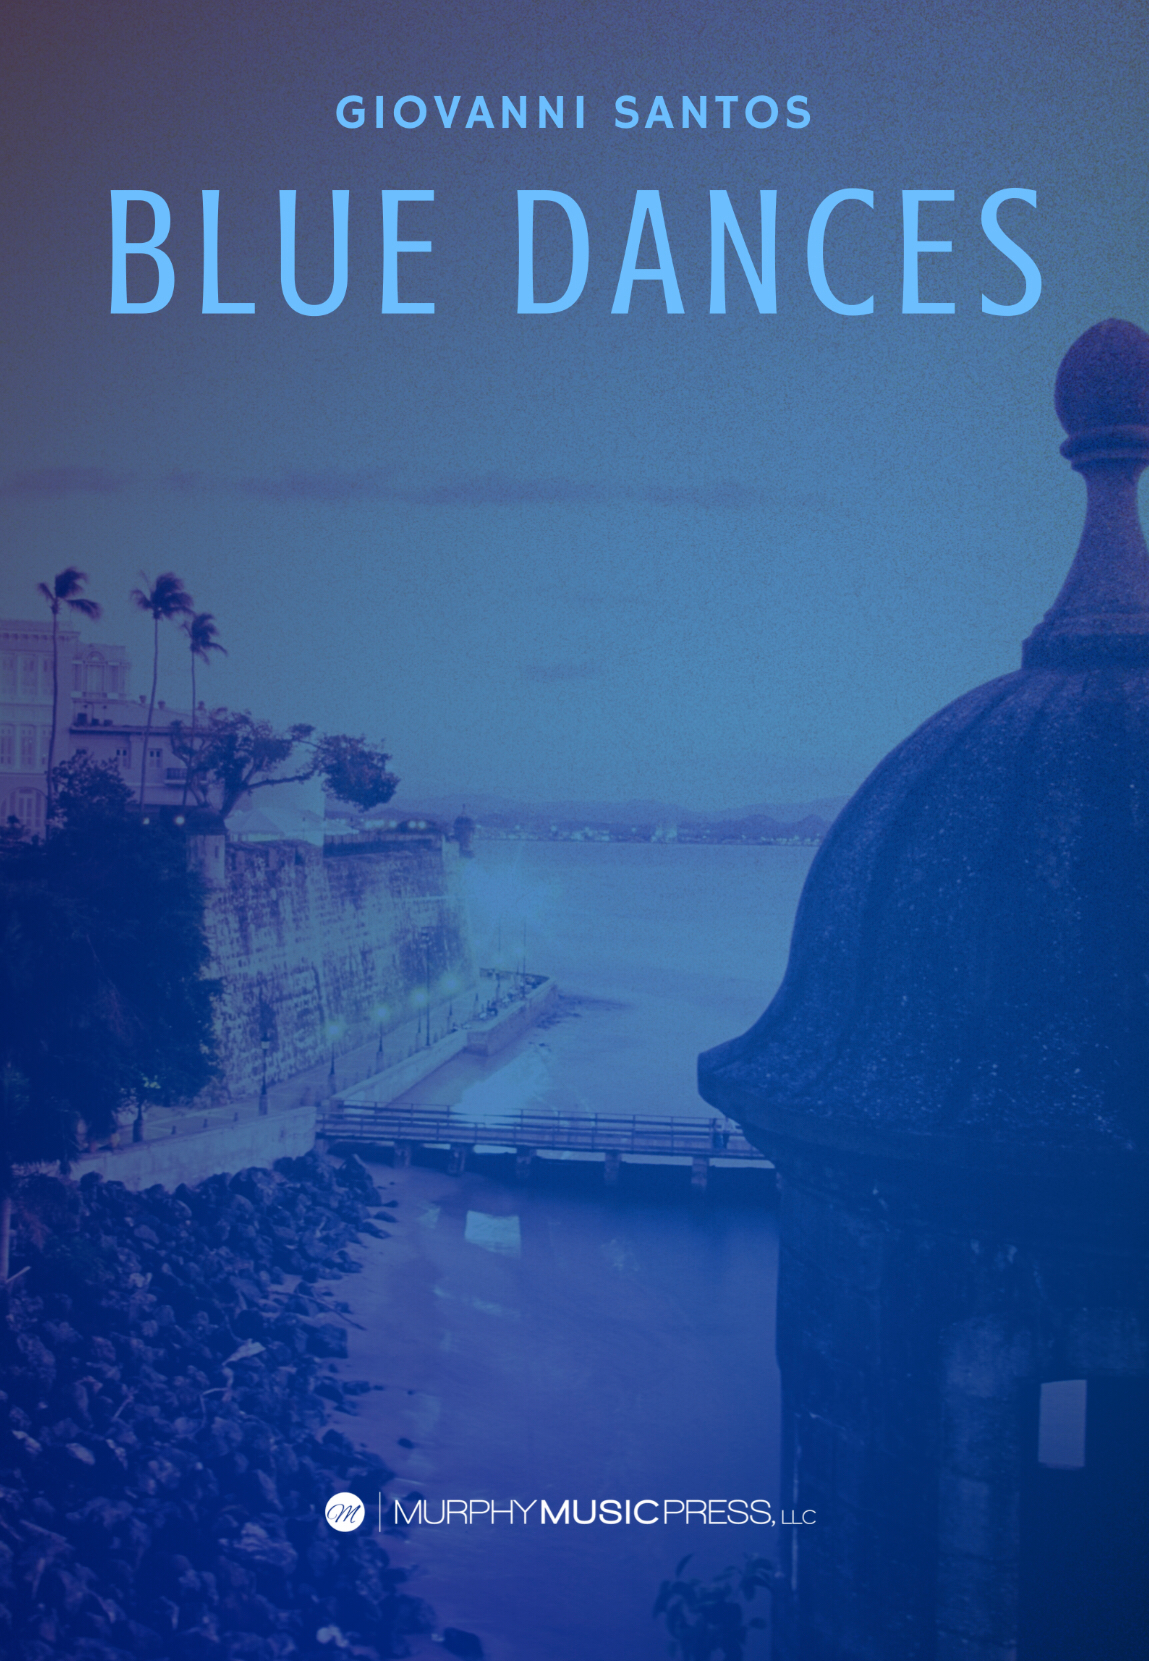 Blue Dances by Giovanni Santos